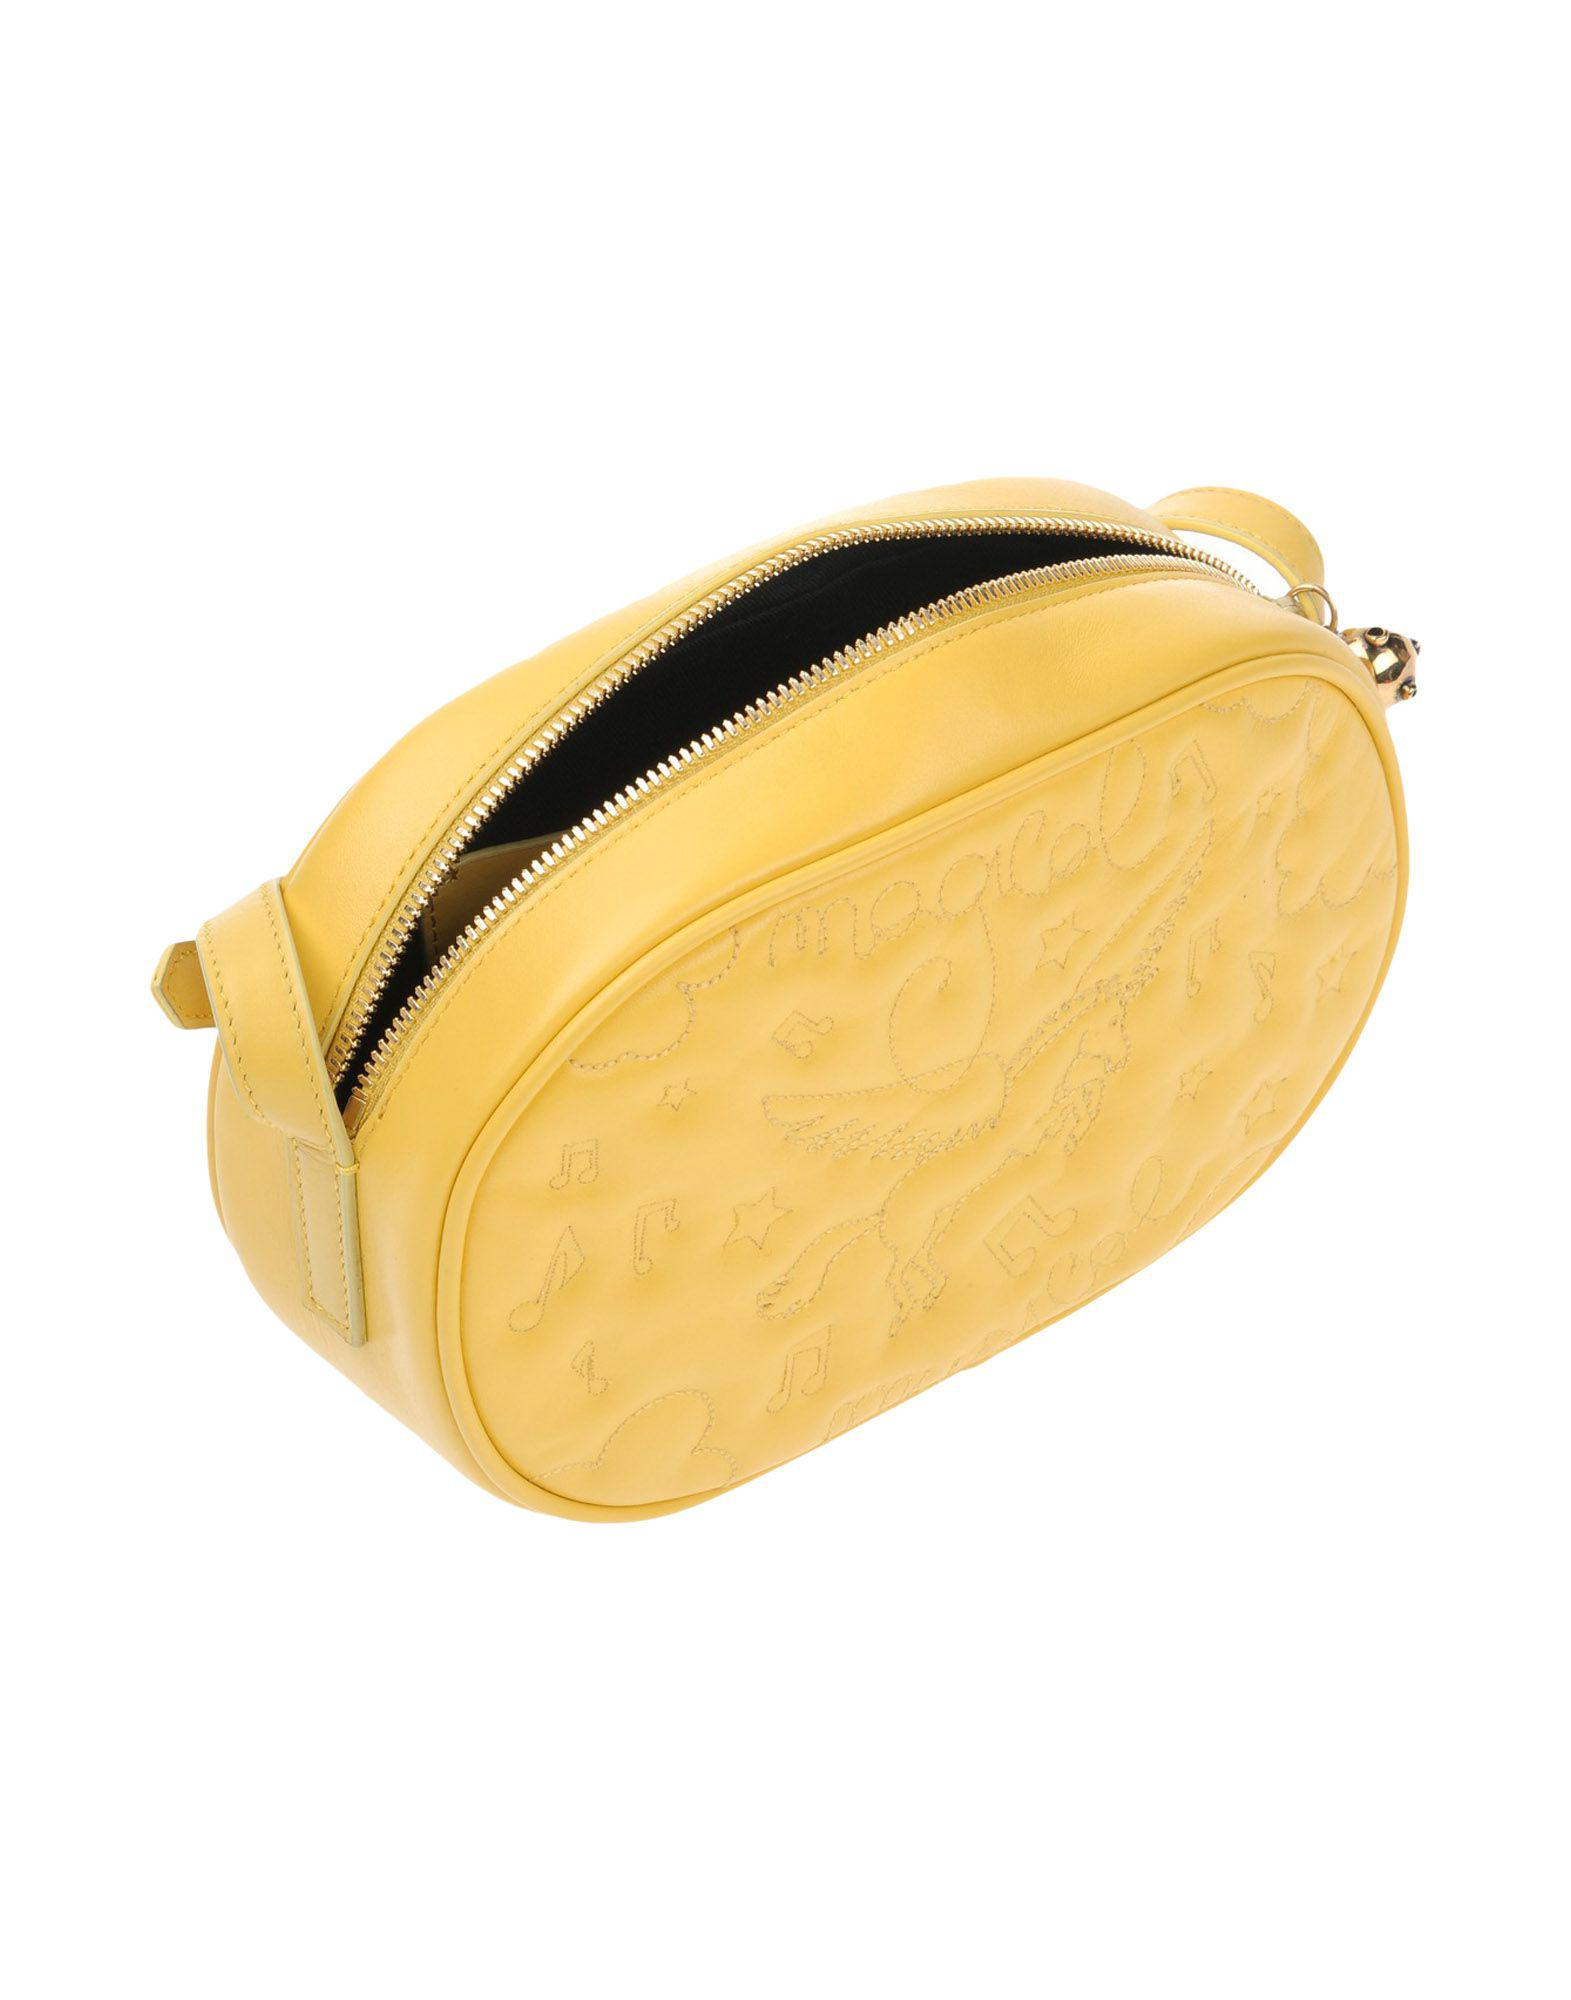 ALESSANDRO ENRIQUEZ Leather Cross-body Bag in Yellow